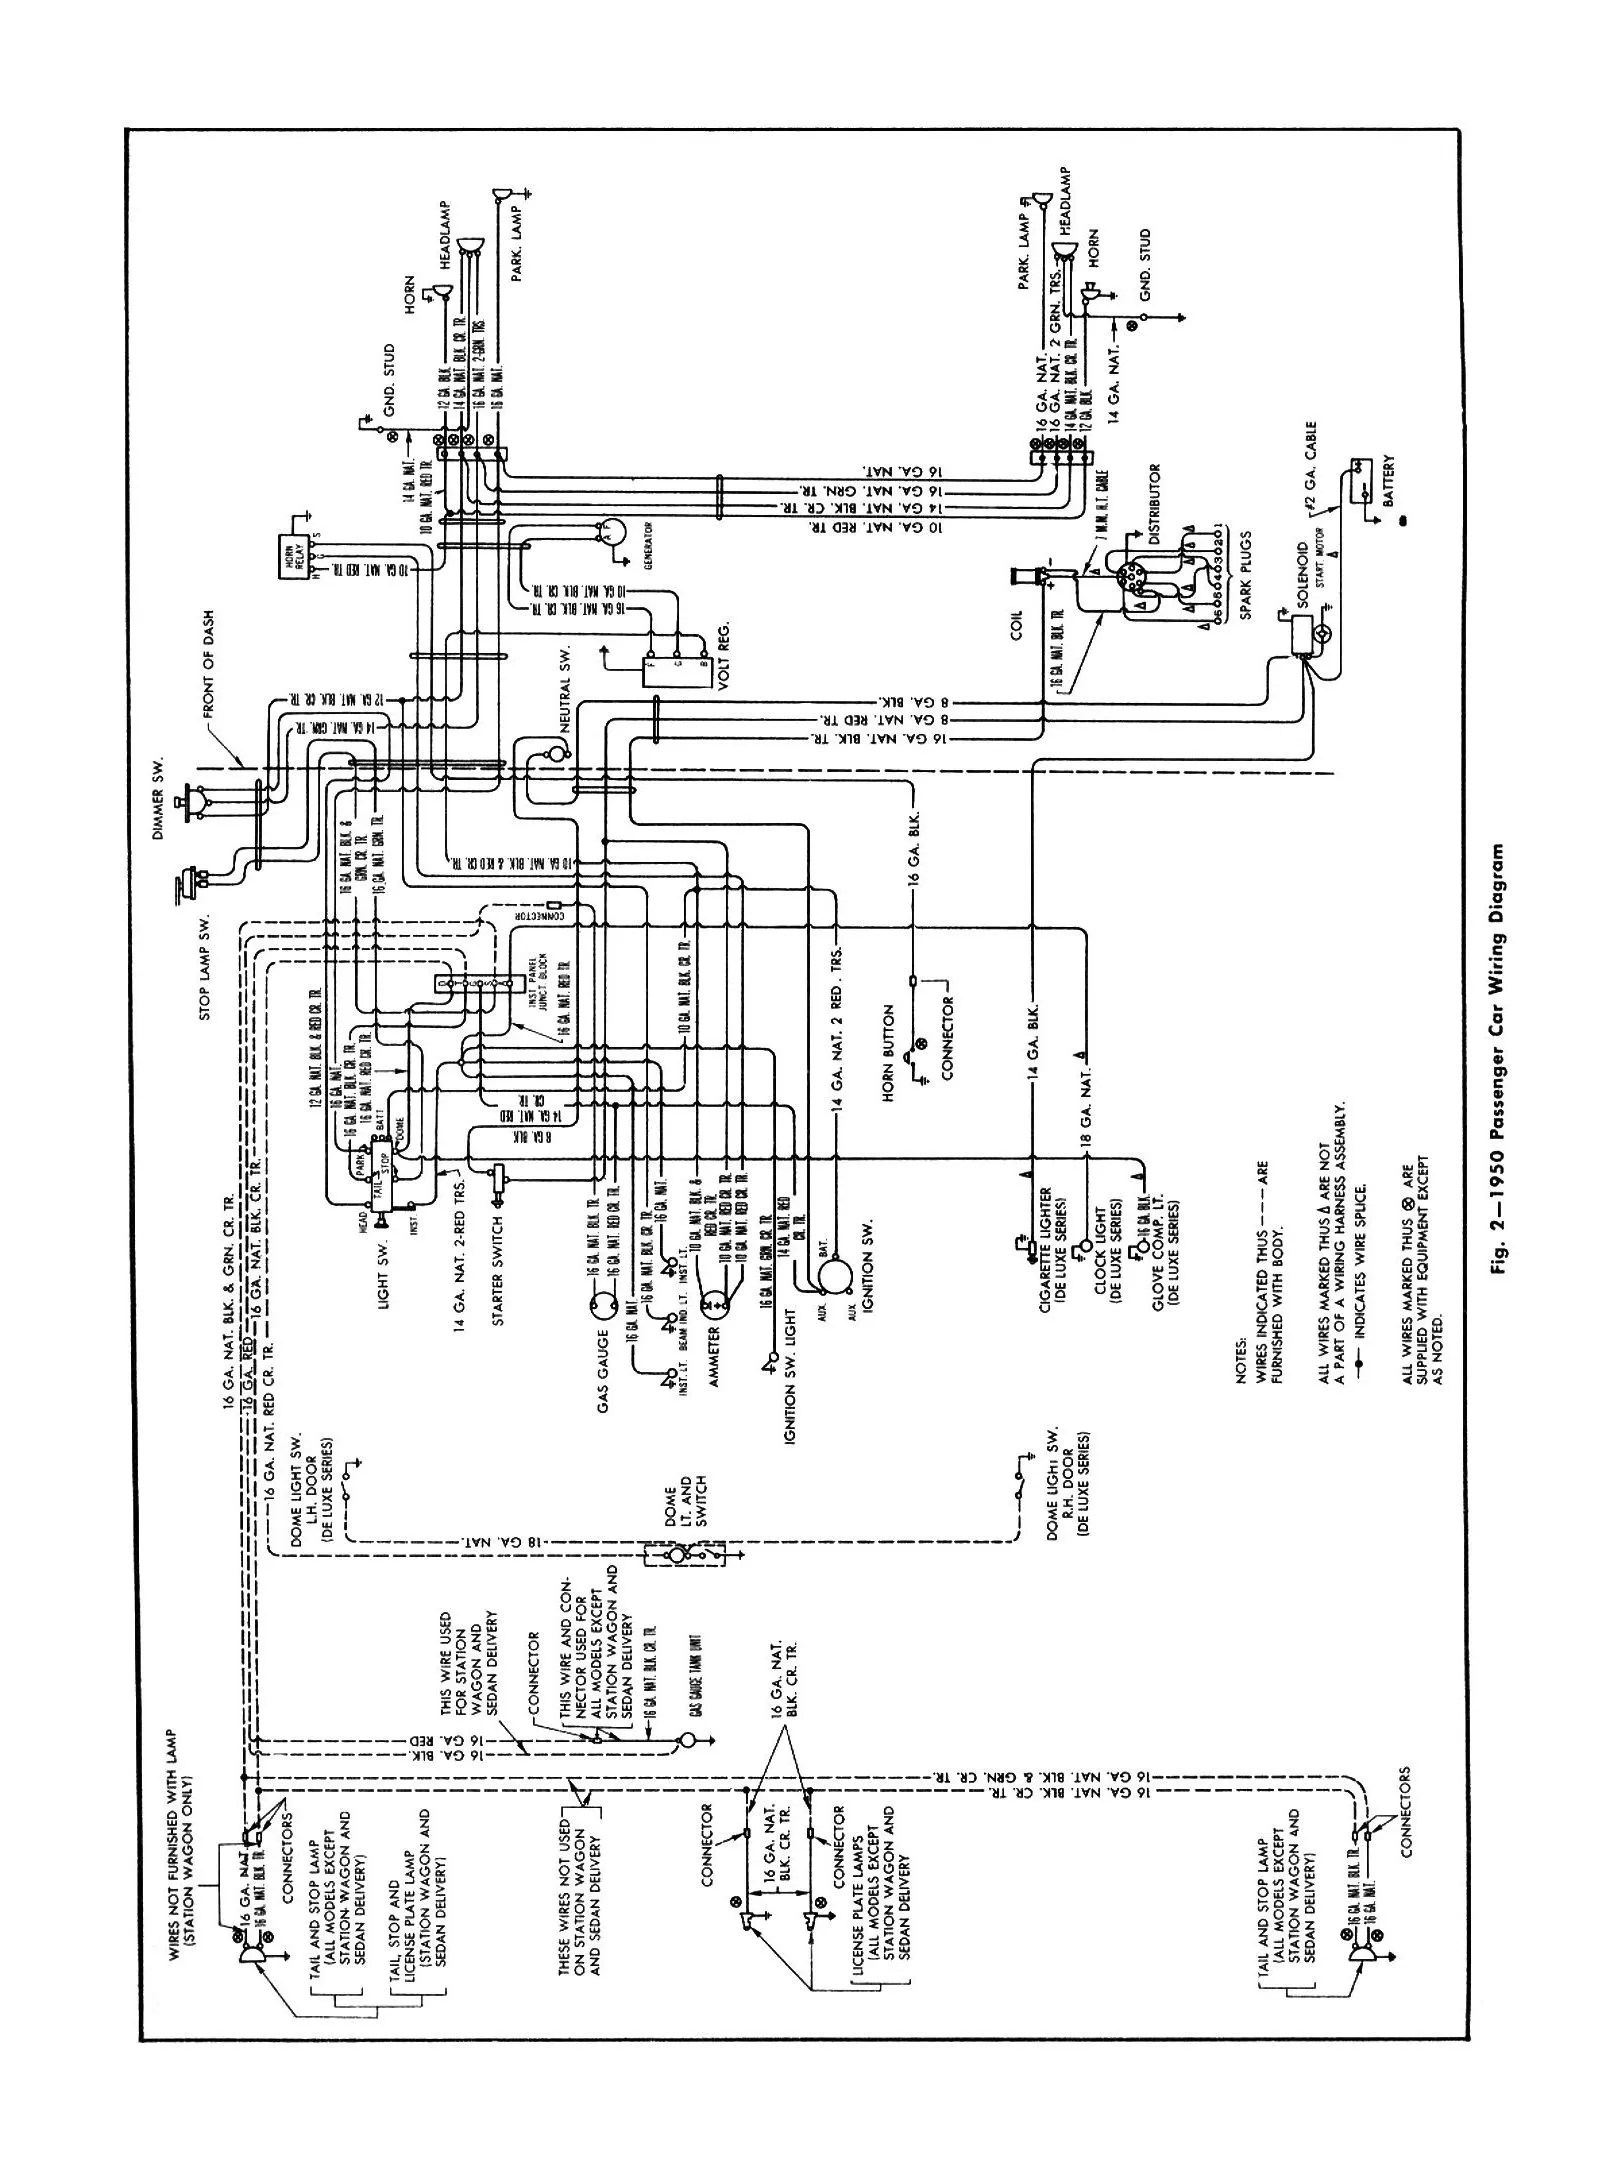 hight resolution of chevy wiring diagrams 50 chevy truck wiring diagram 1950 car general wiring